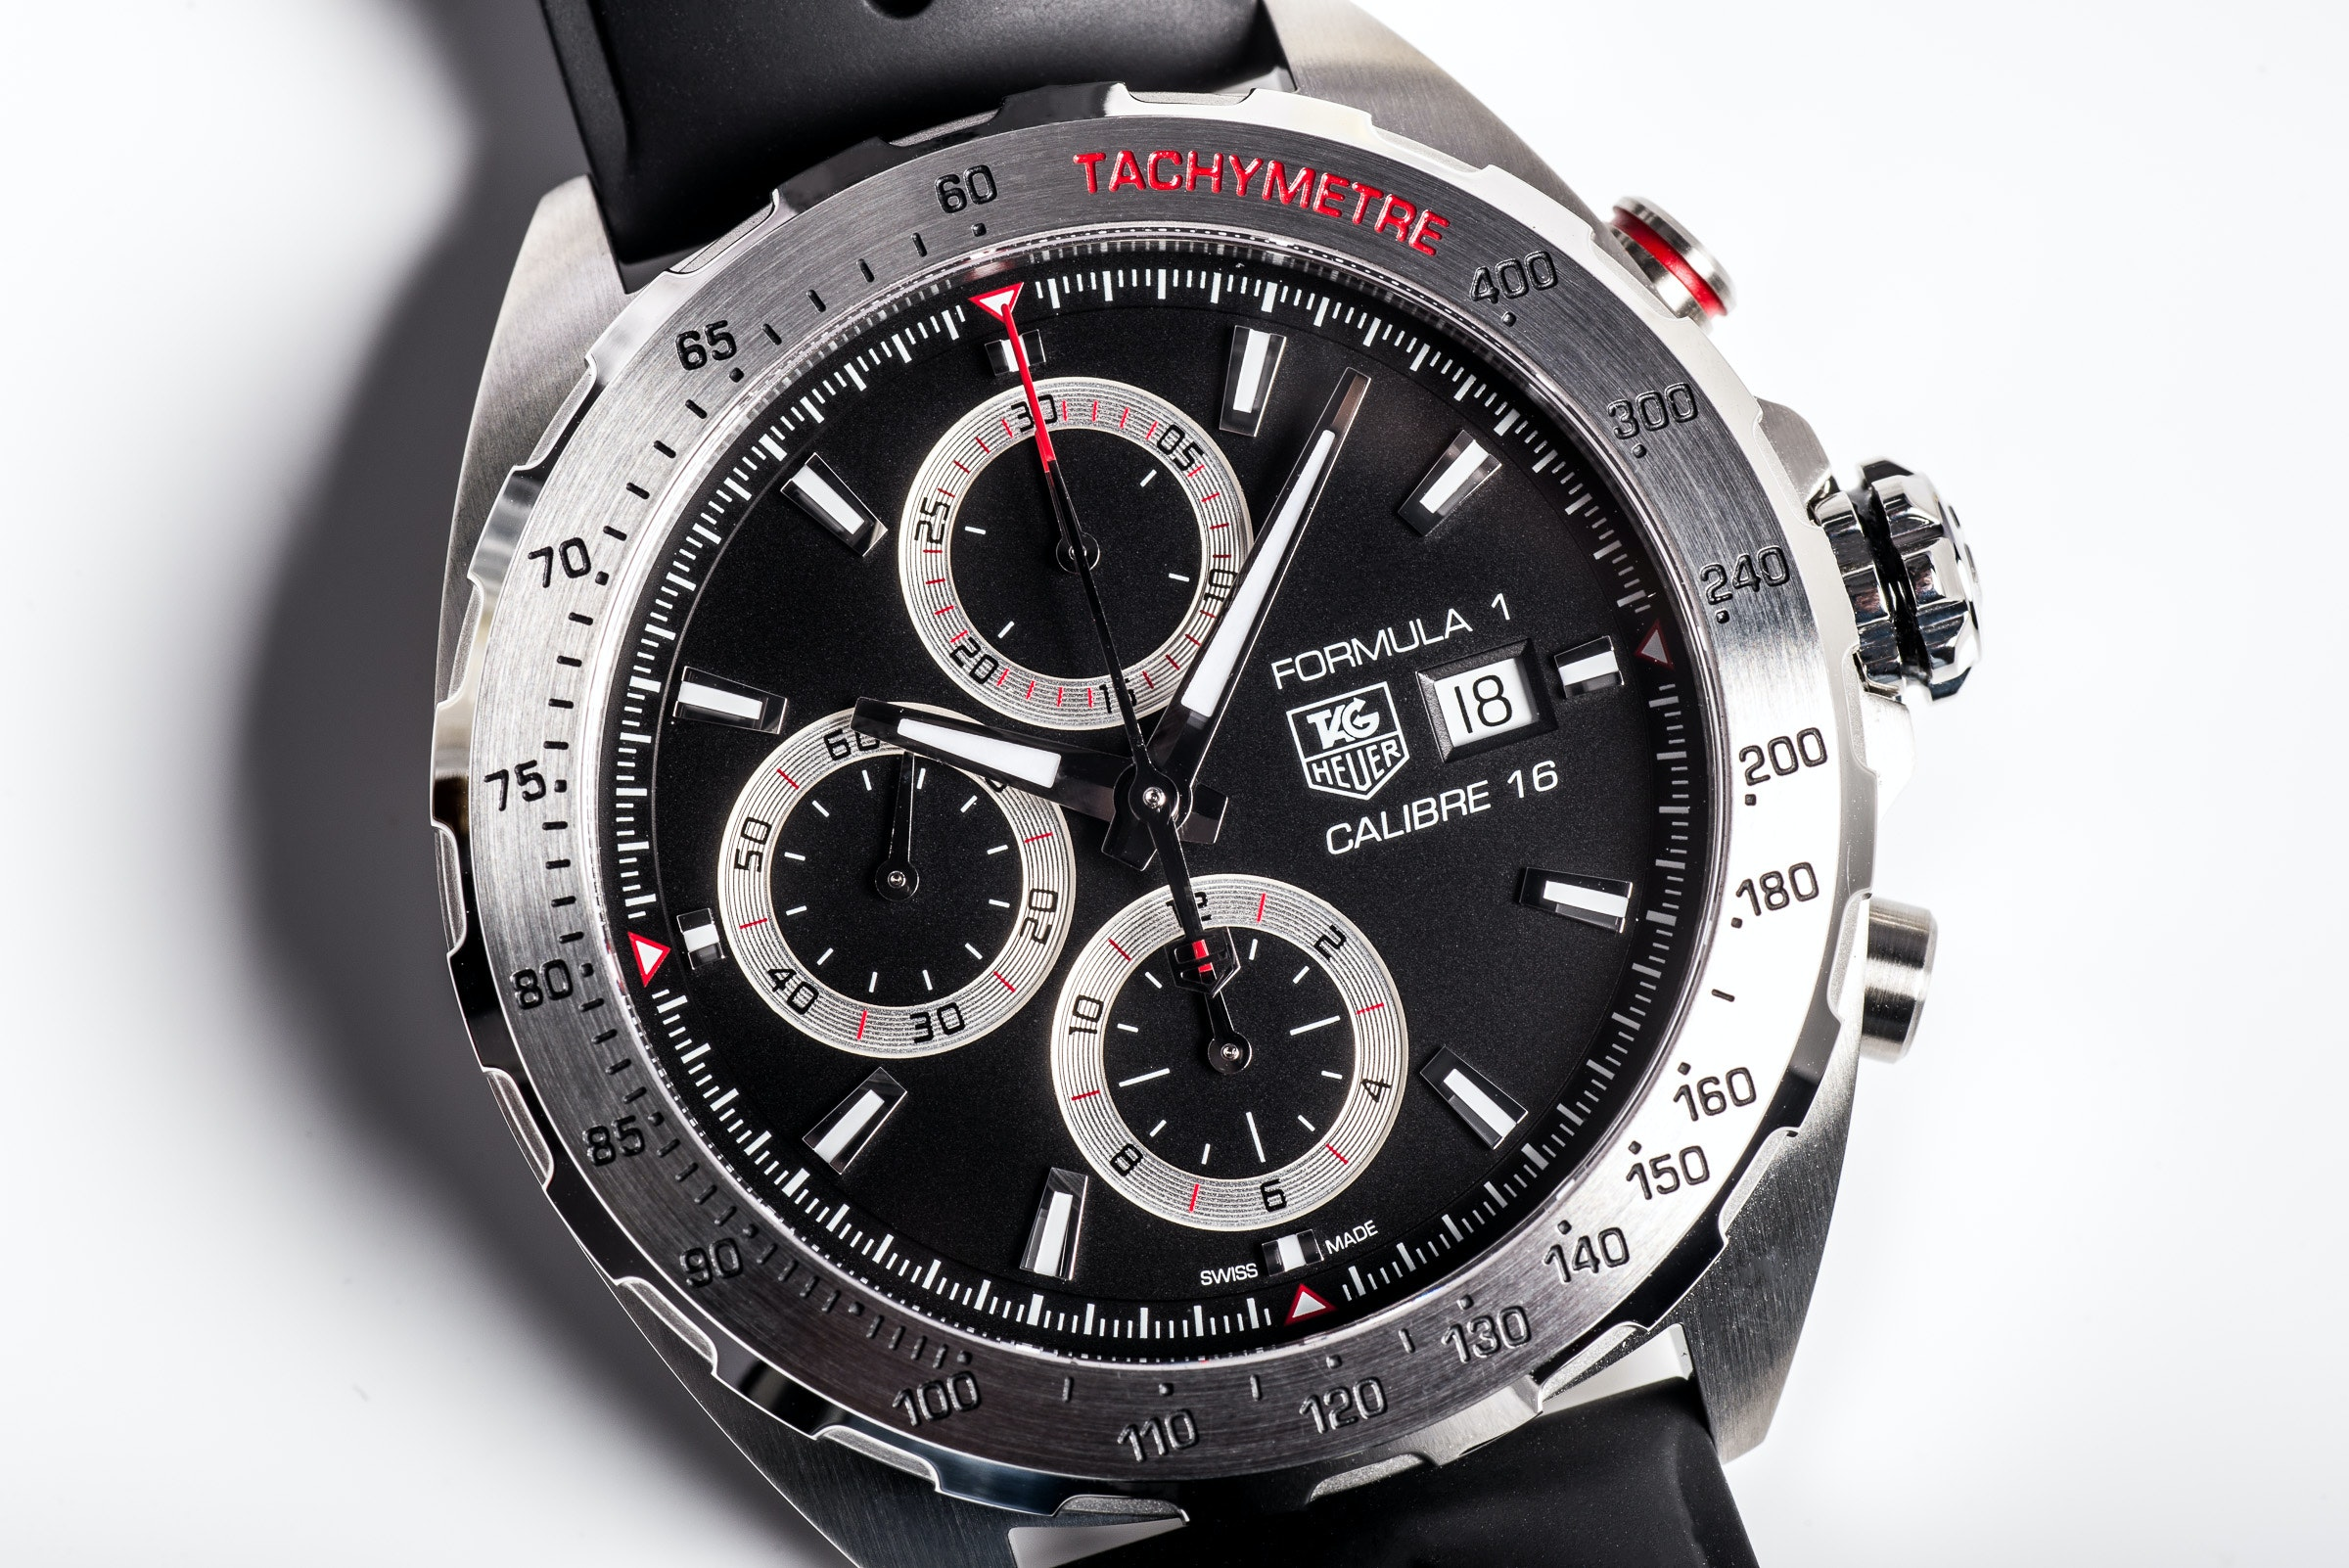 Is it real? A buyer's guide to spotting a fake TAG Heuer